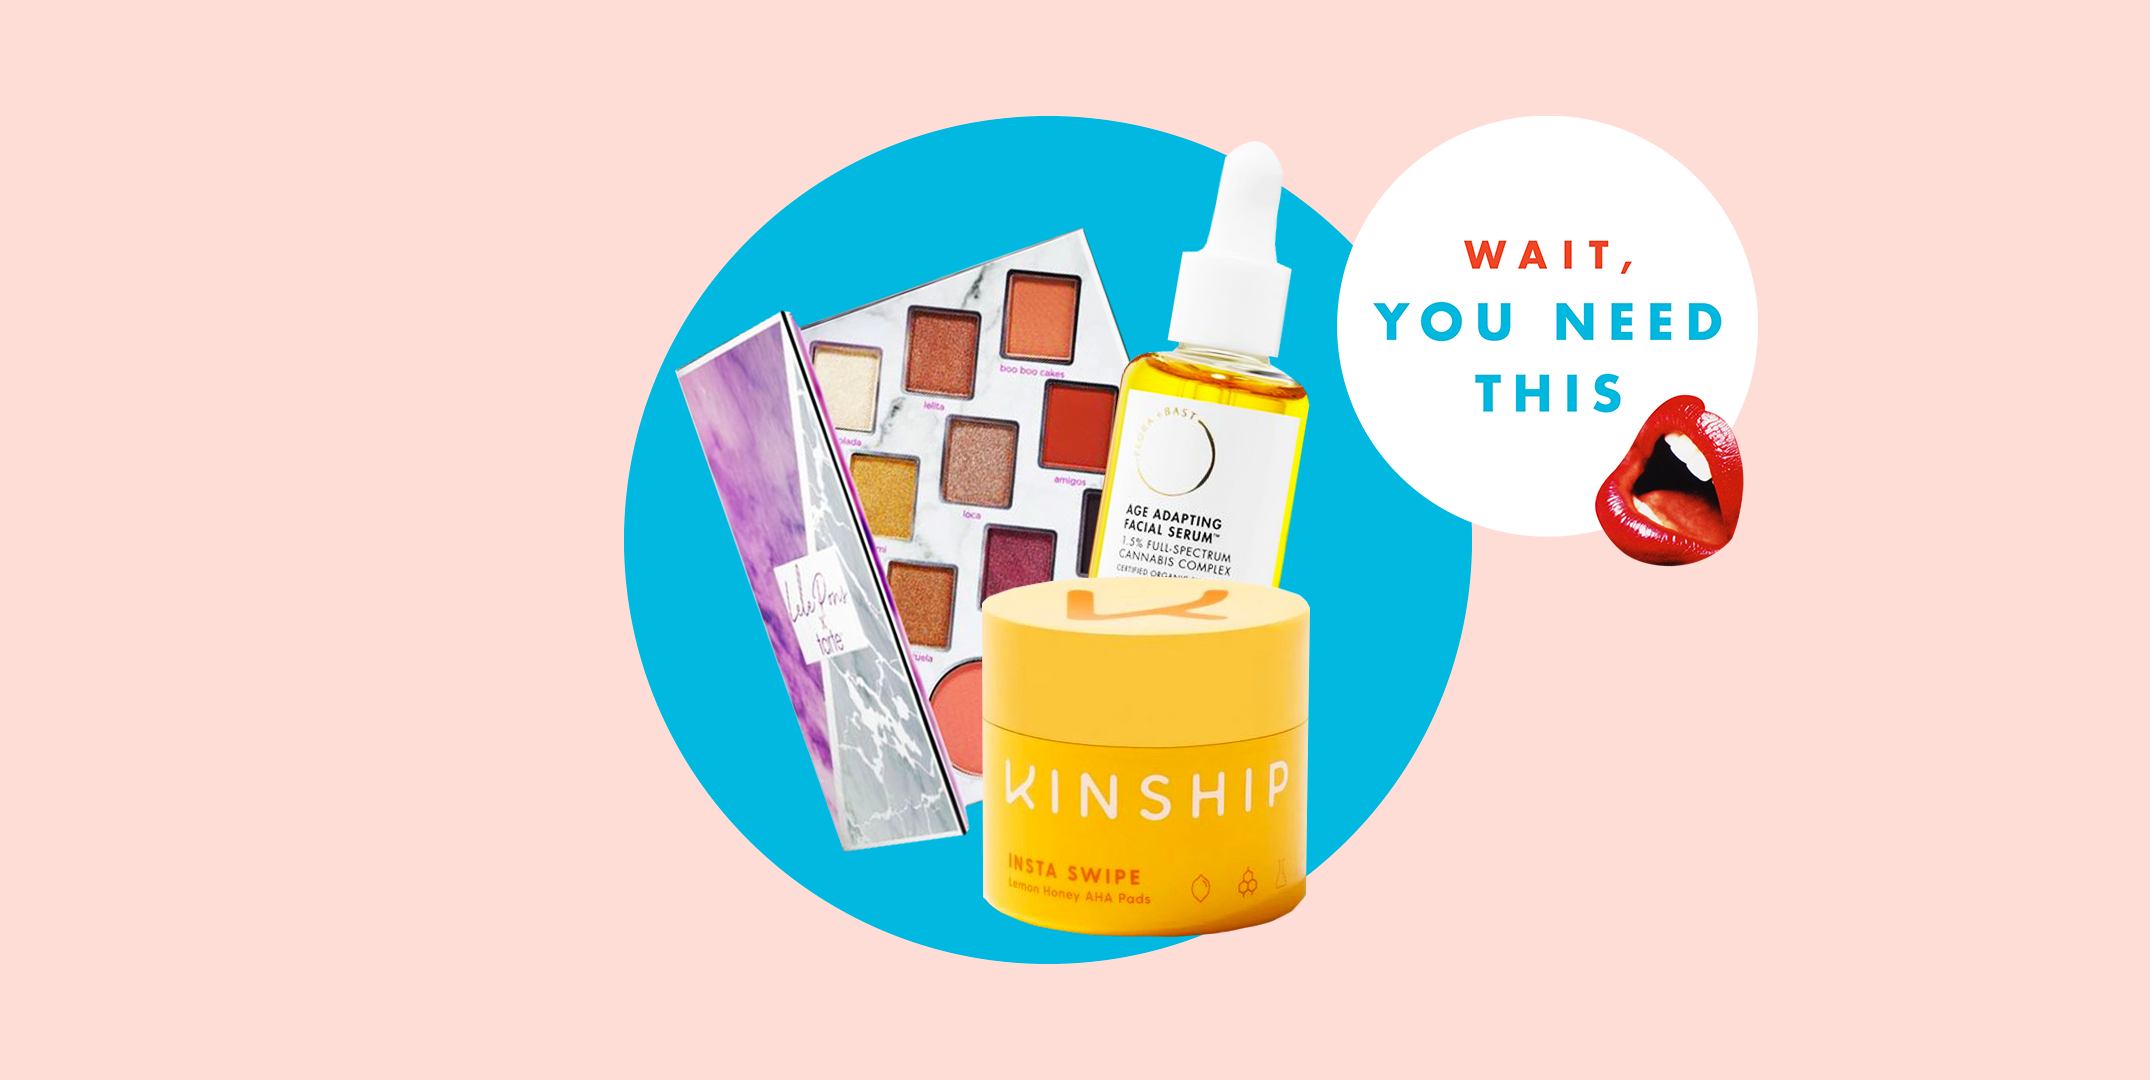 Wait, You Need This: 5 Brand-New Beauty Products You Actually Need for Thanksgiving